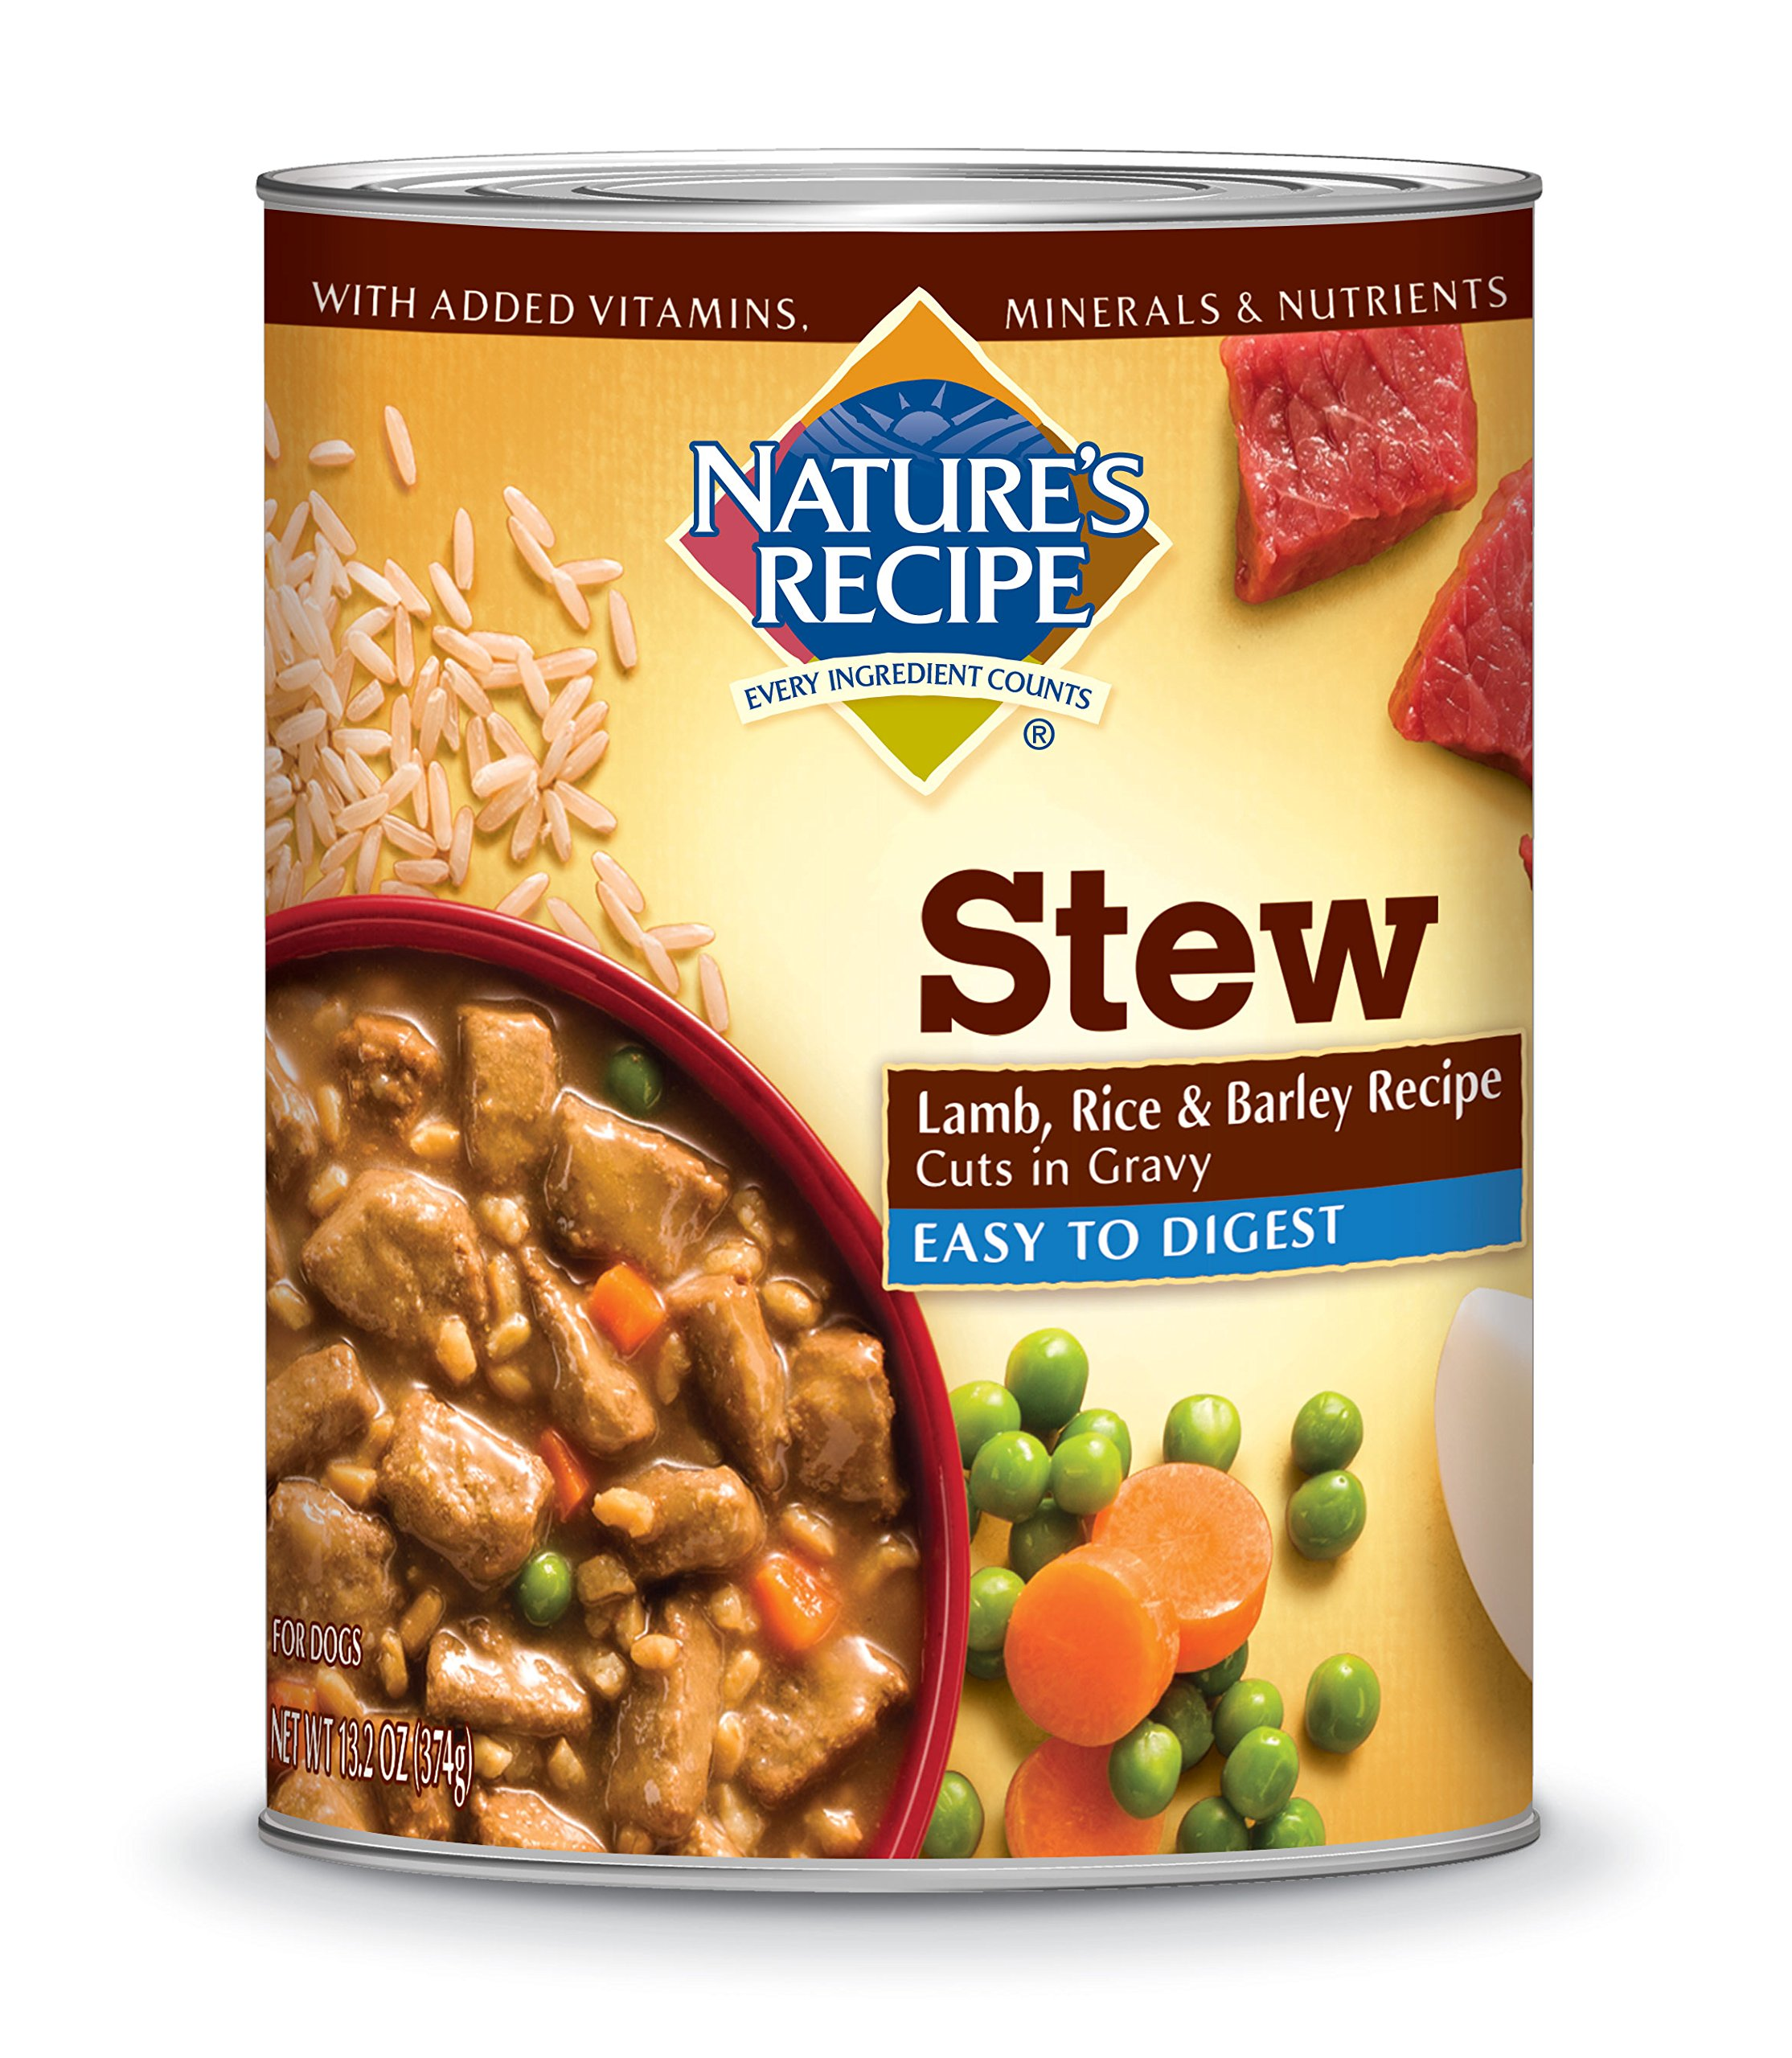 Nature's Recipe Easy to Digest Wet Dog Food, Lamb, Rice & Barley Recipe Cuts In Gravy, 13.2-Ounce Can (Pack of 12)